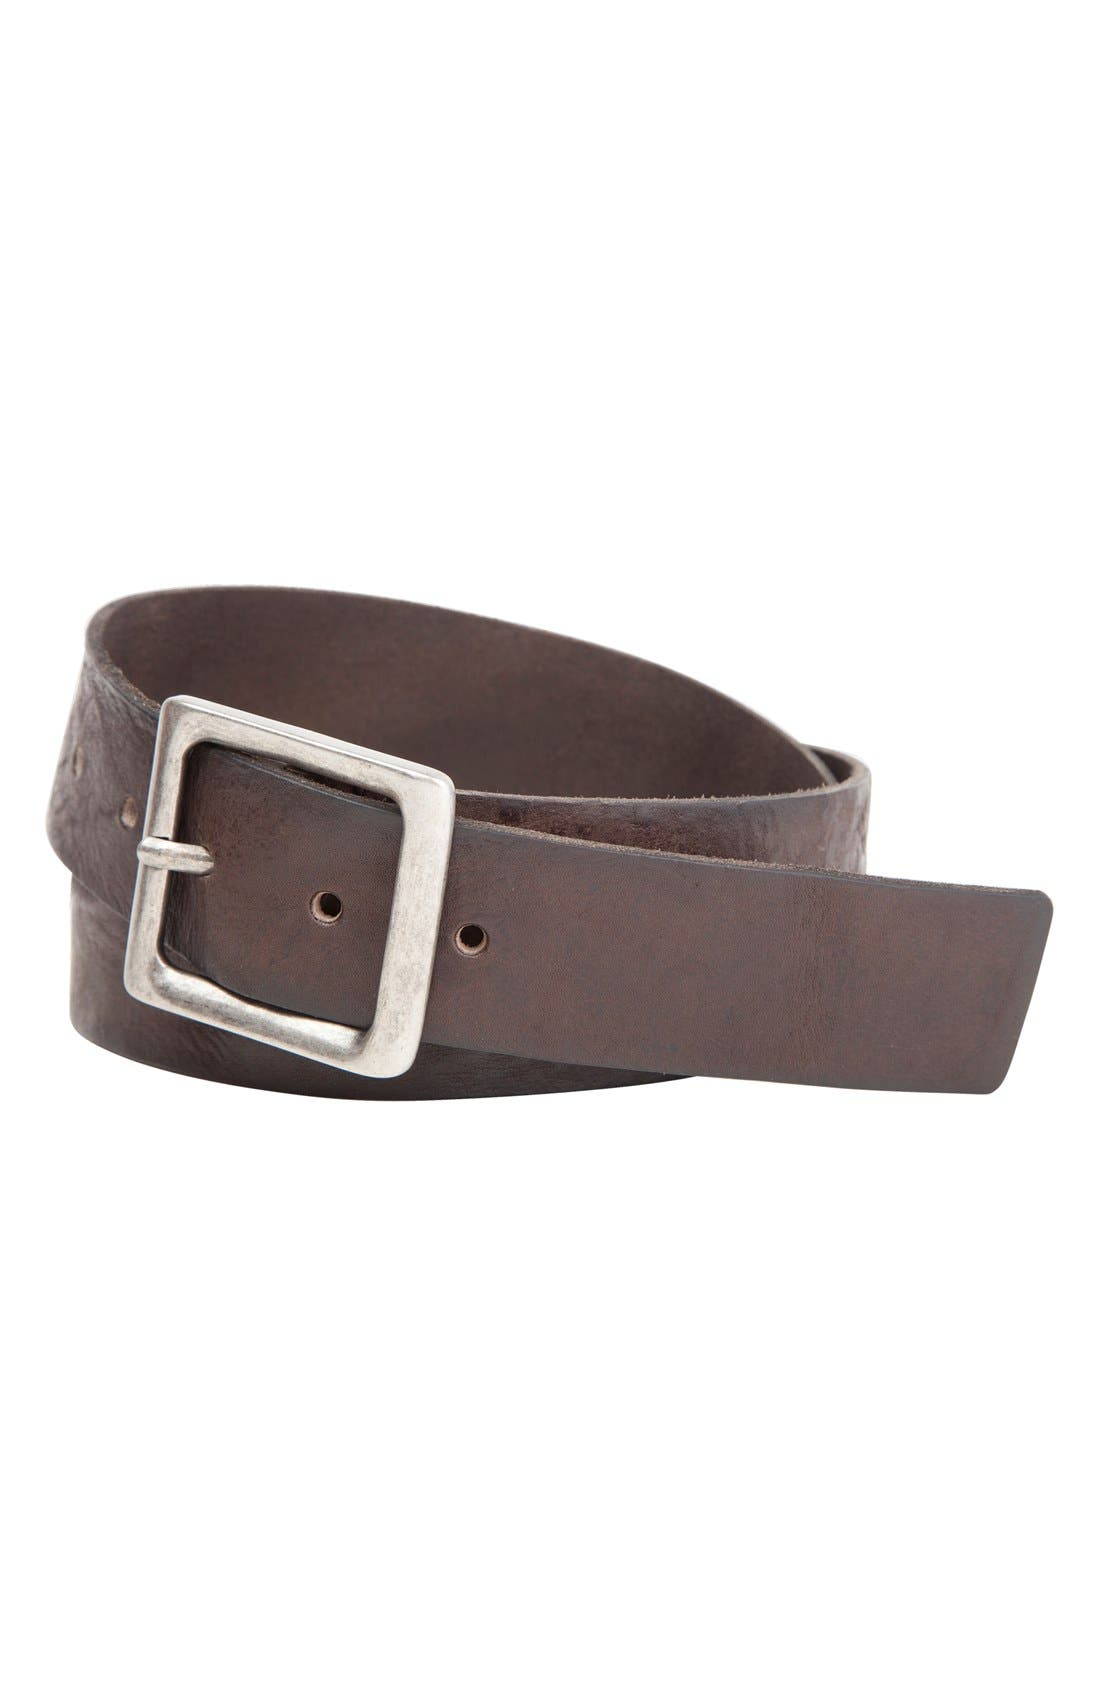 Main Image - Trafalgar 'Simsbury' Leather Belt